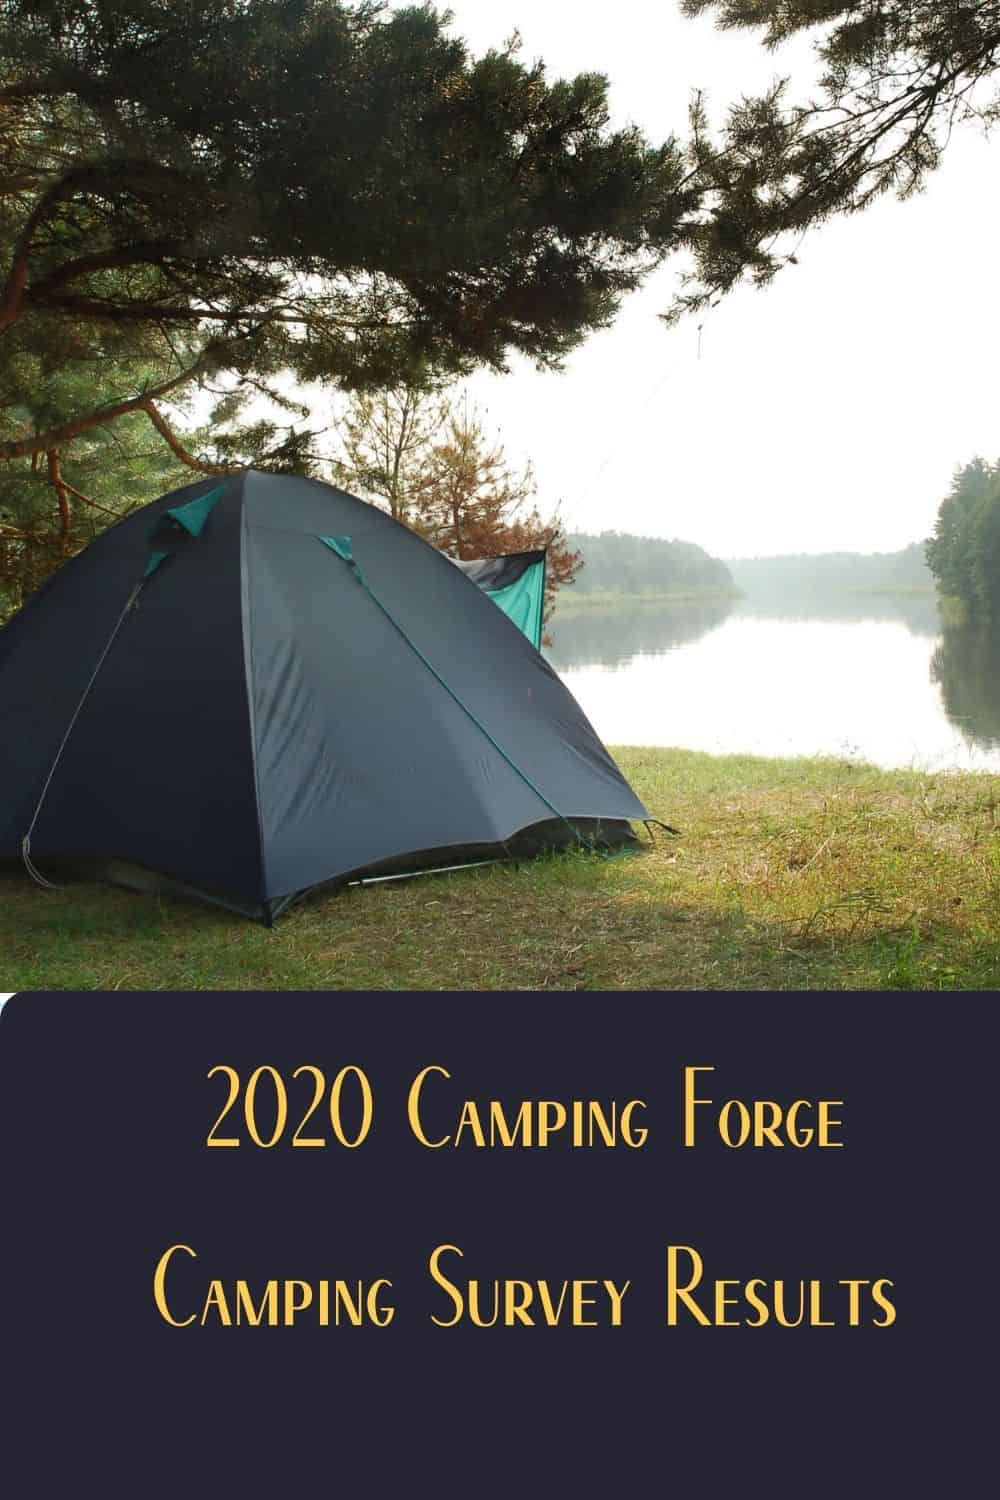 Pinterest image for 2020 Camping Forge Camping Survey Results